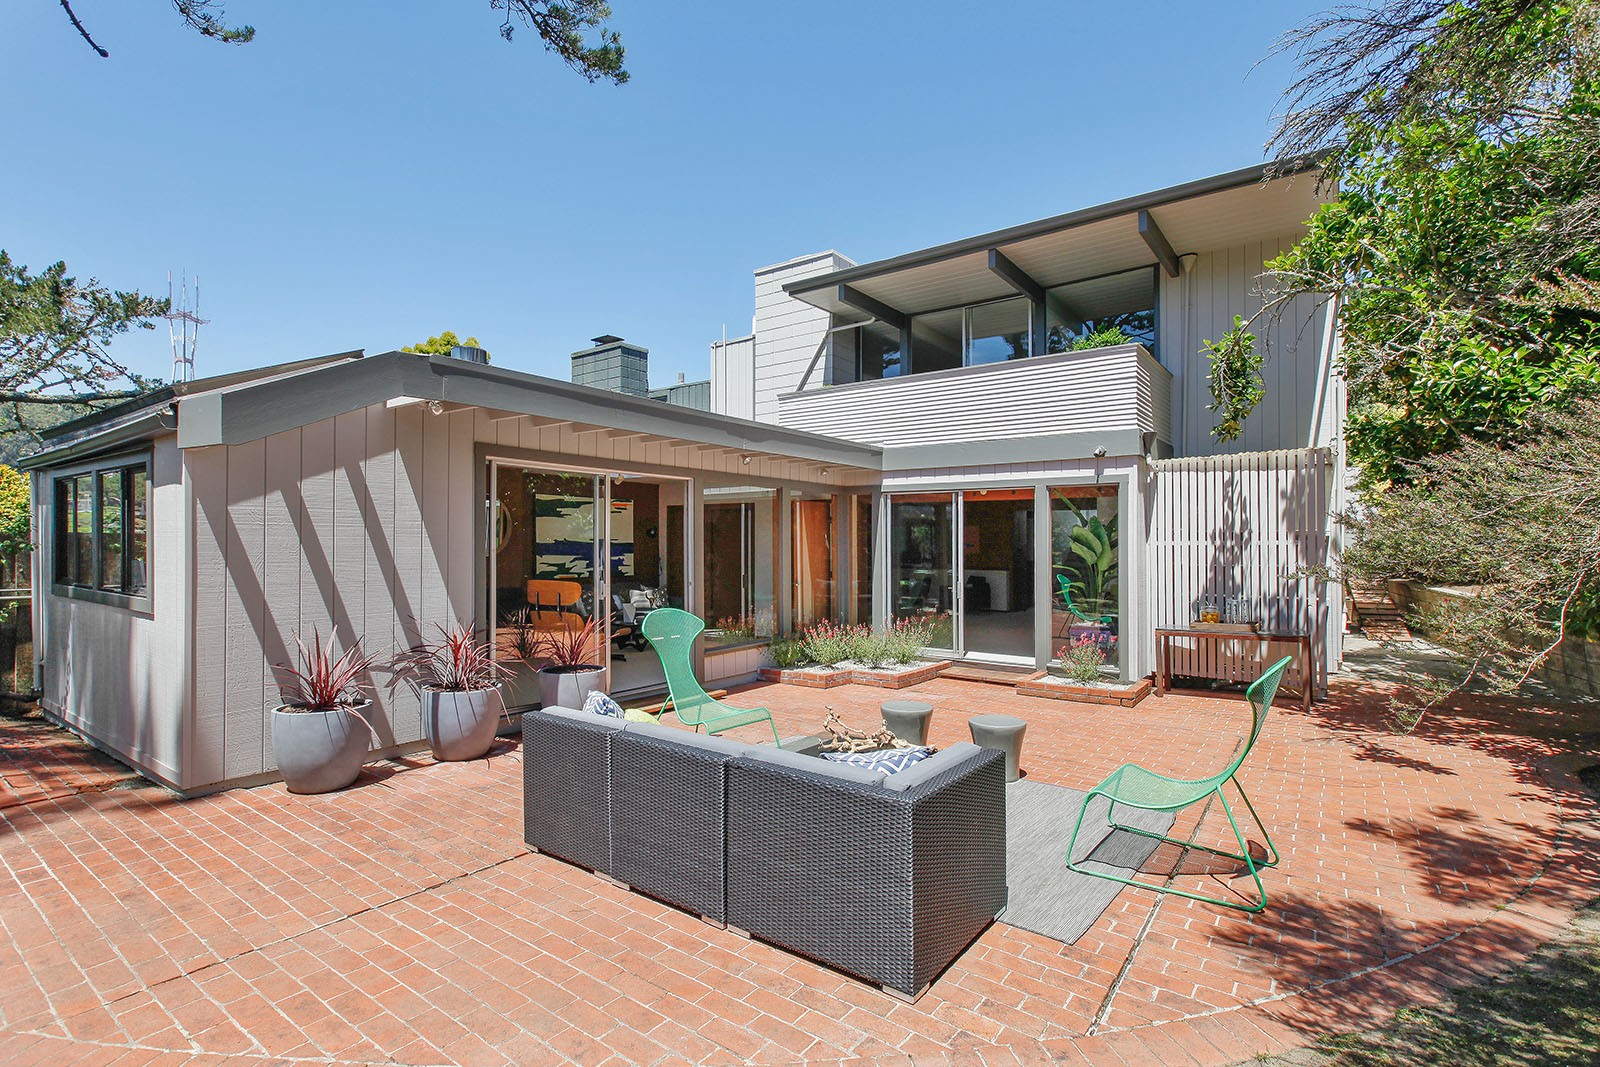 Rare two-story Eichler home in California